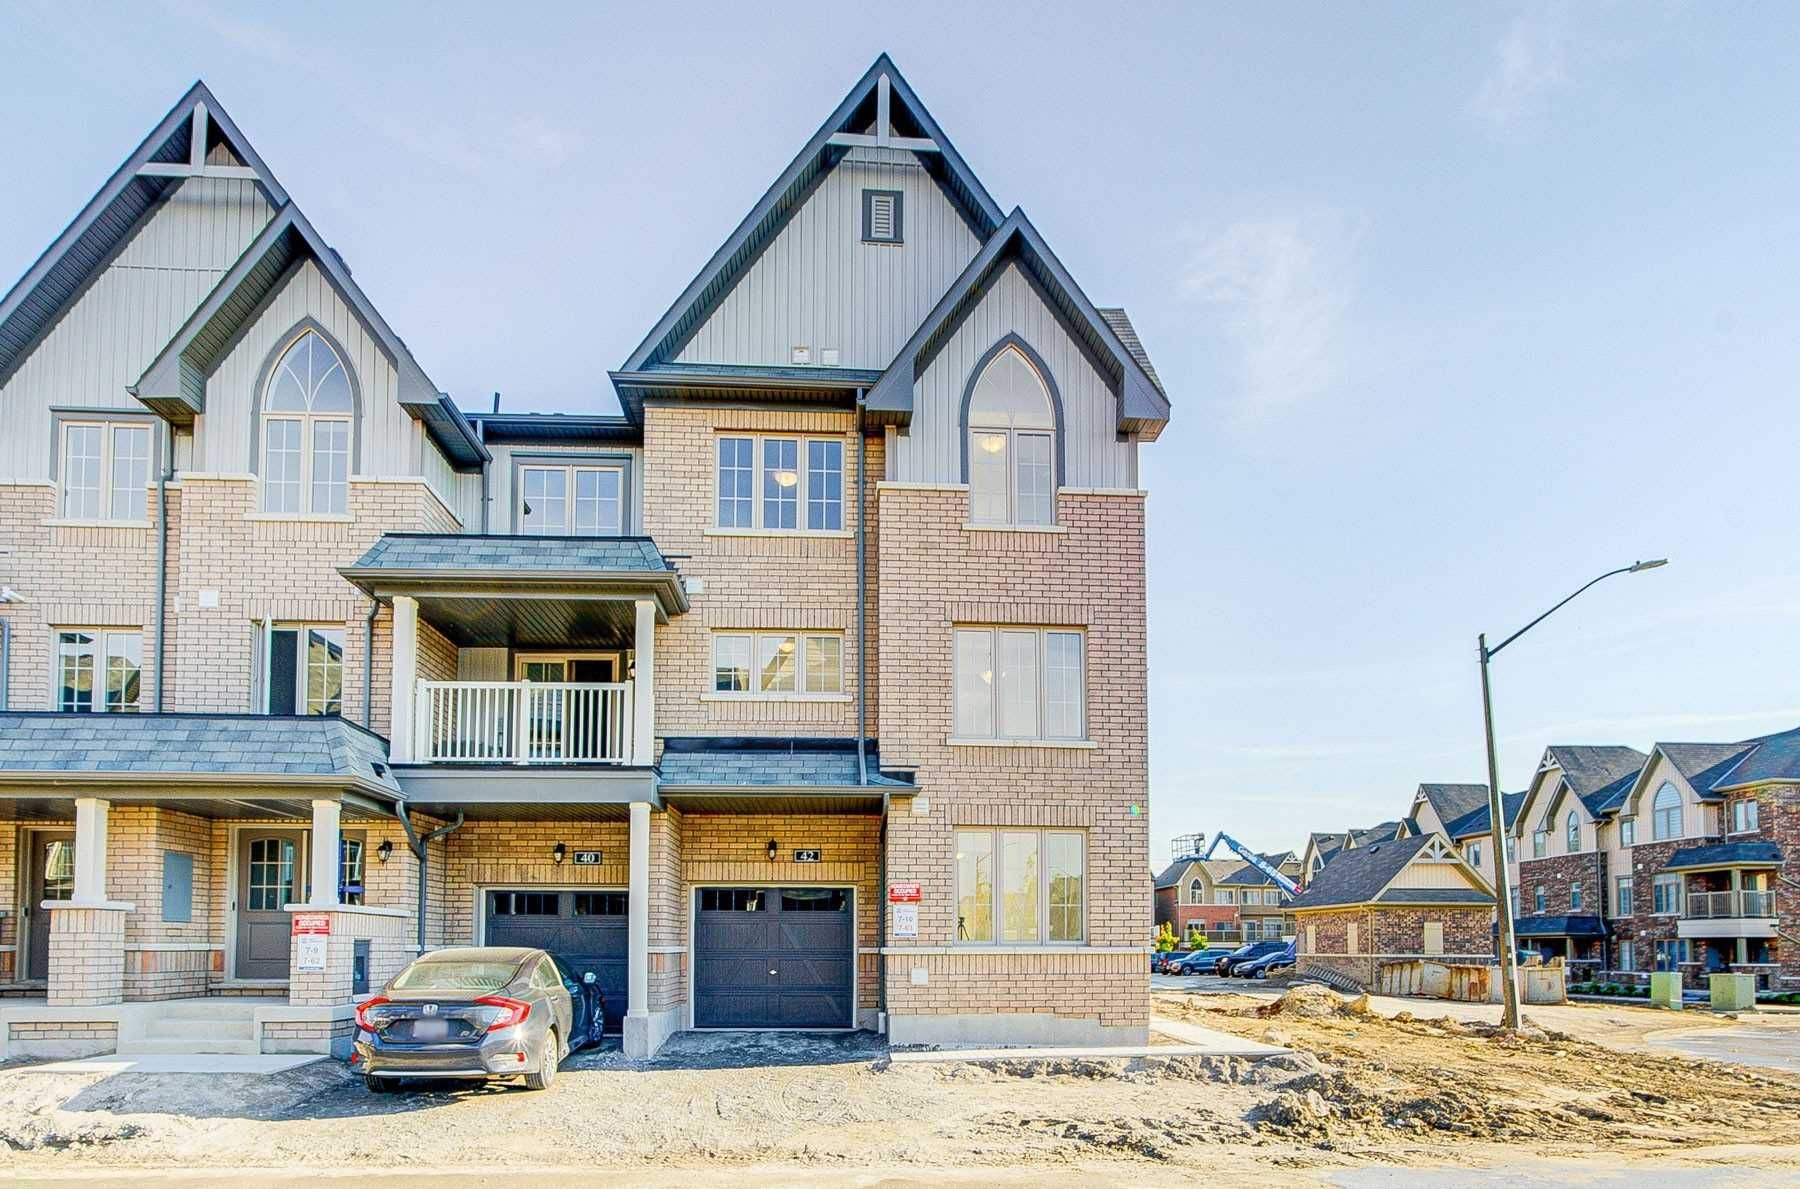 Main Photo: 42 Amulet Way in Whitby: Pringle Creek House (3-Storey) for lease : MLS®# E5390858